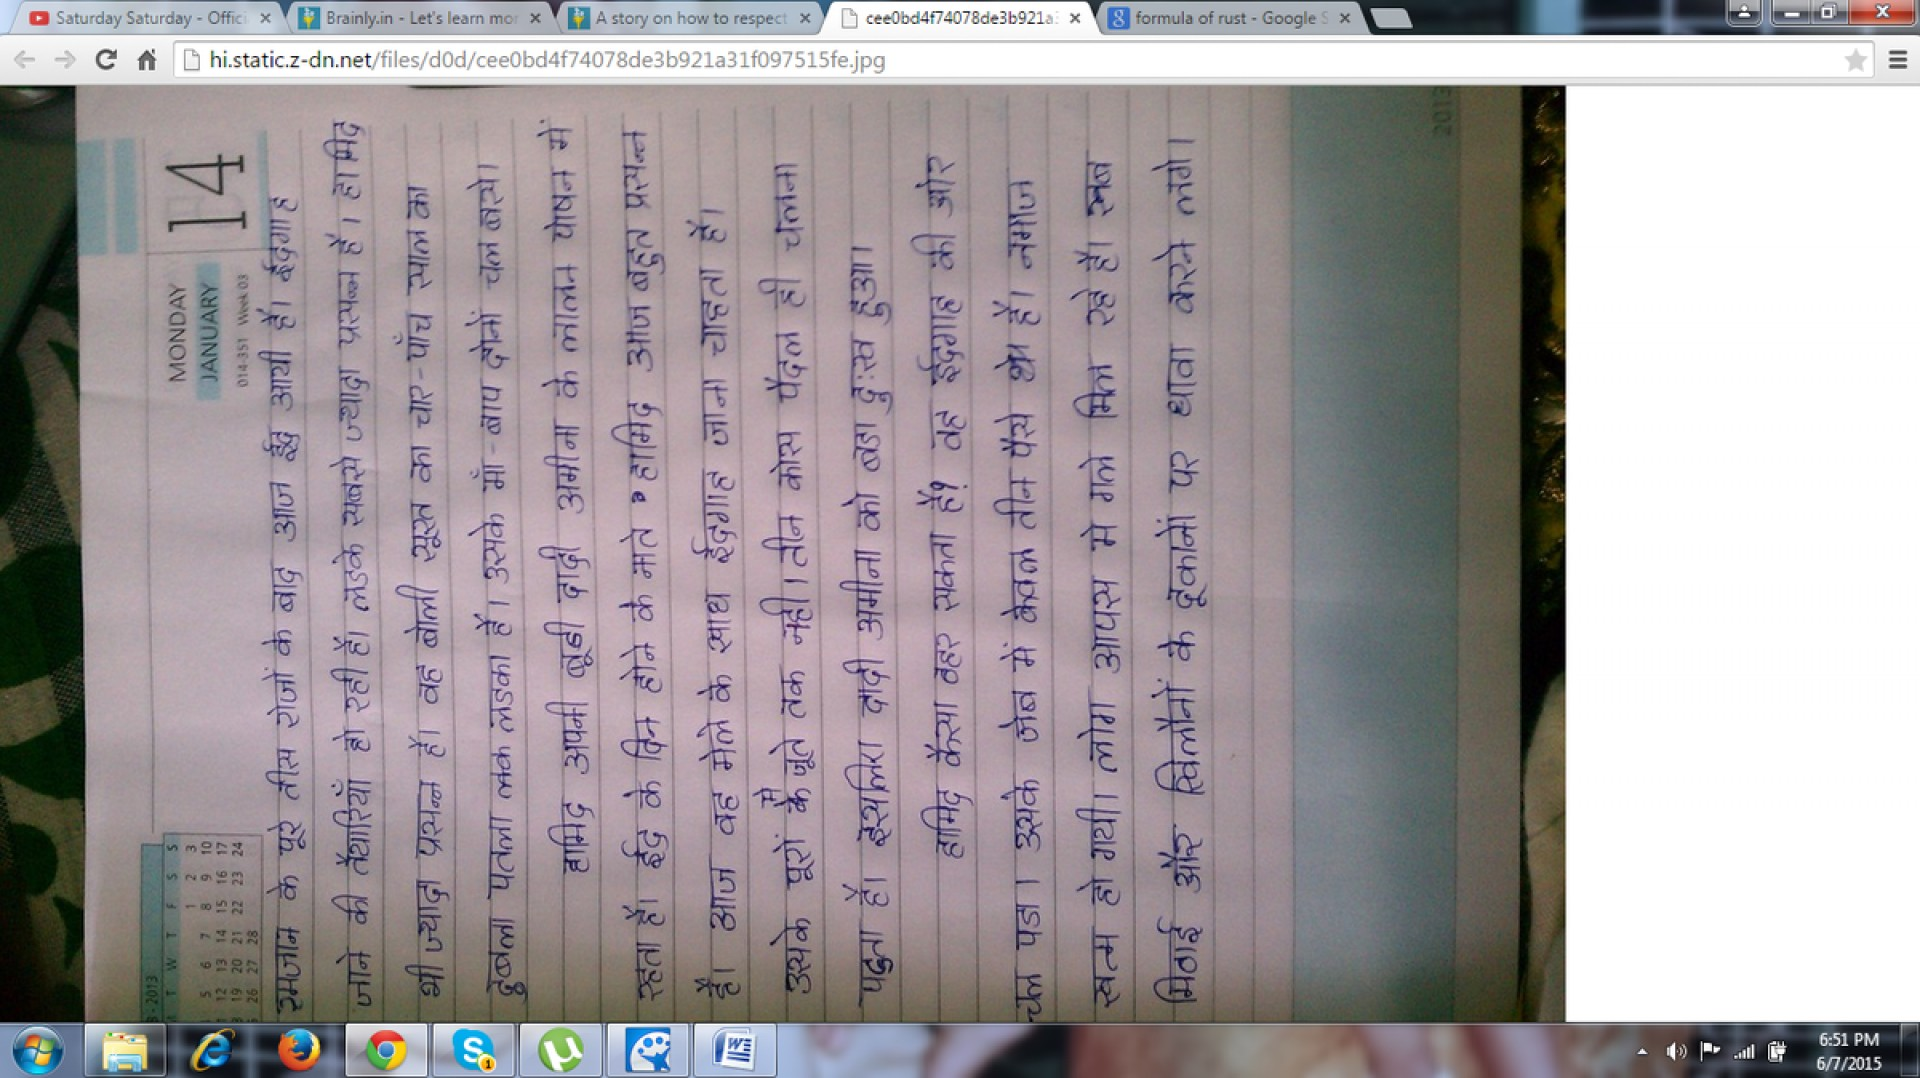 012 Respect To Elders Essay Unbelievable In Hindi Respecting For Class 2 6 1920